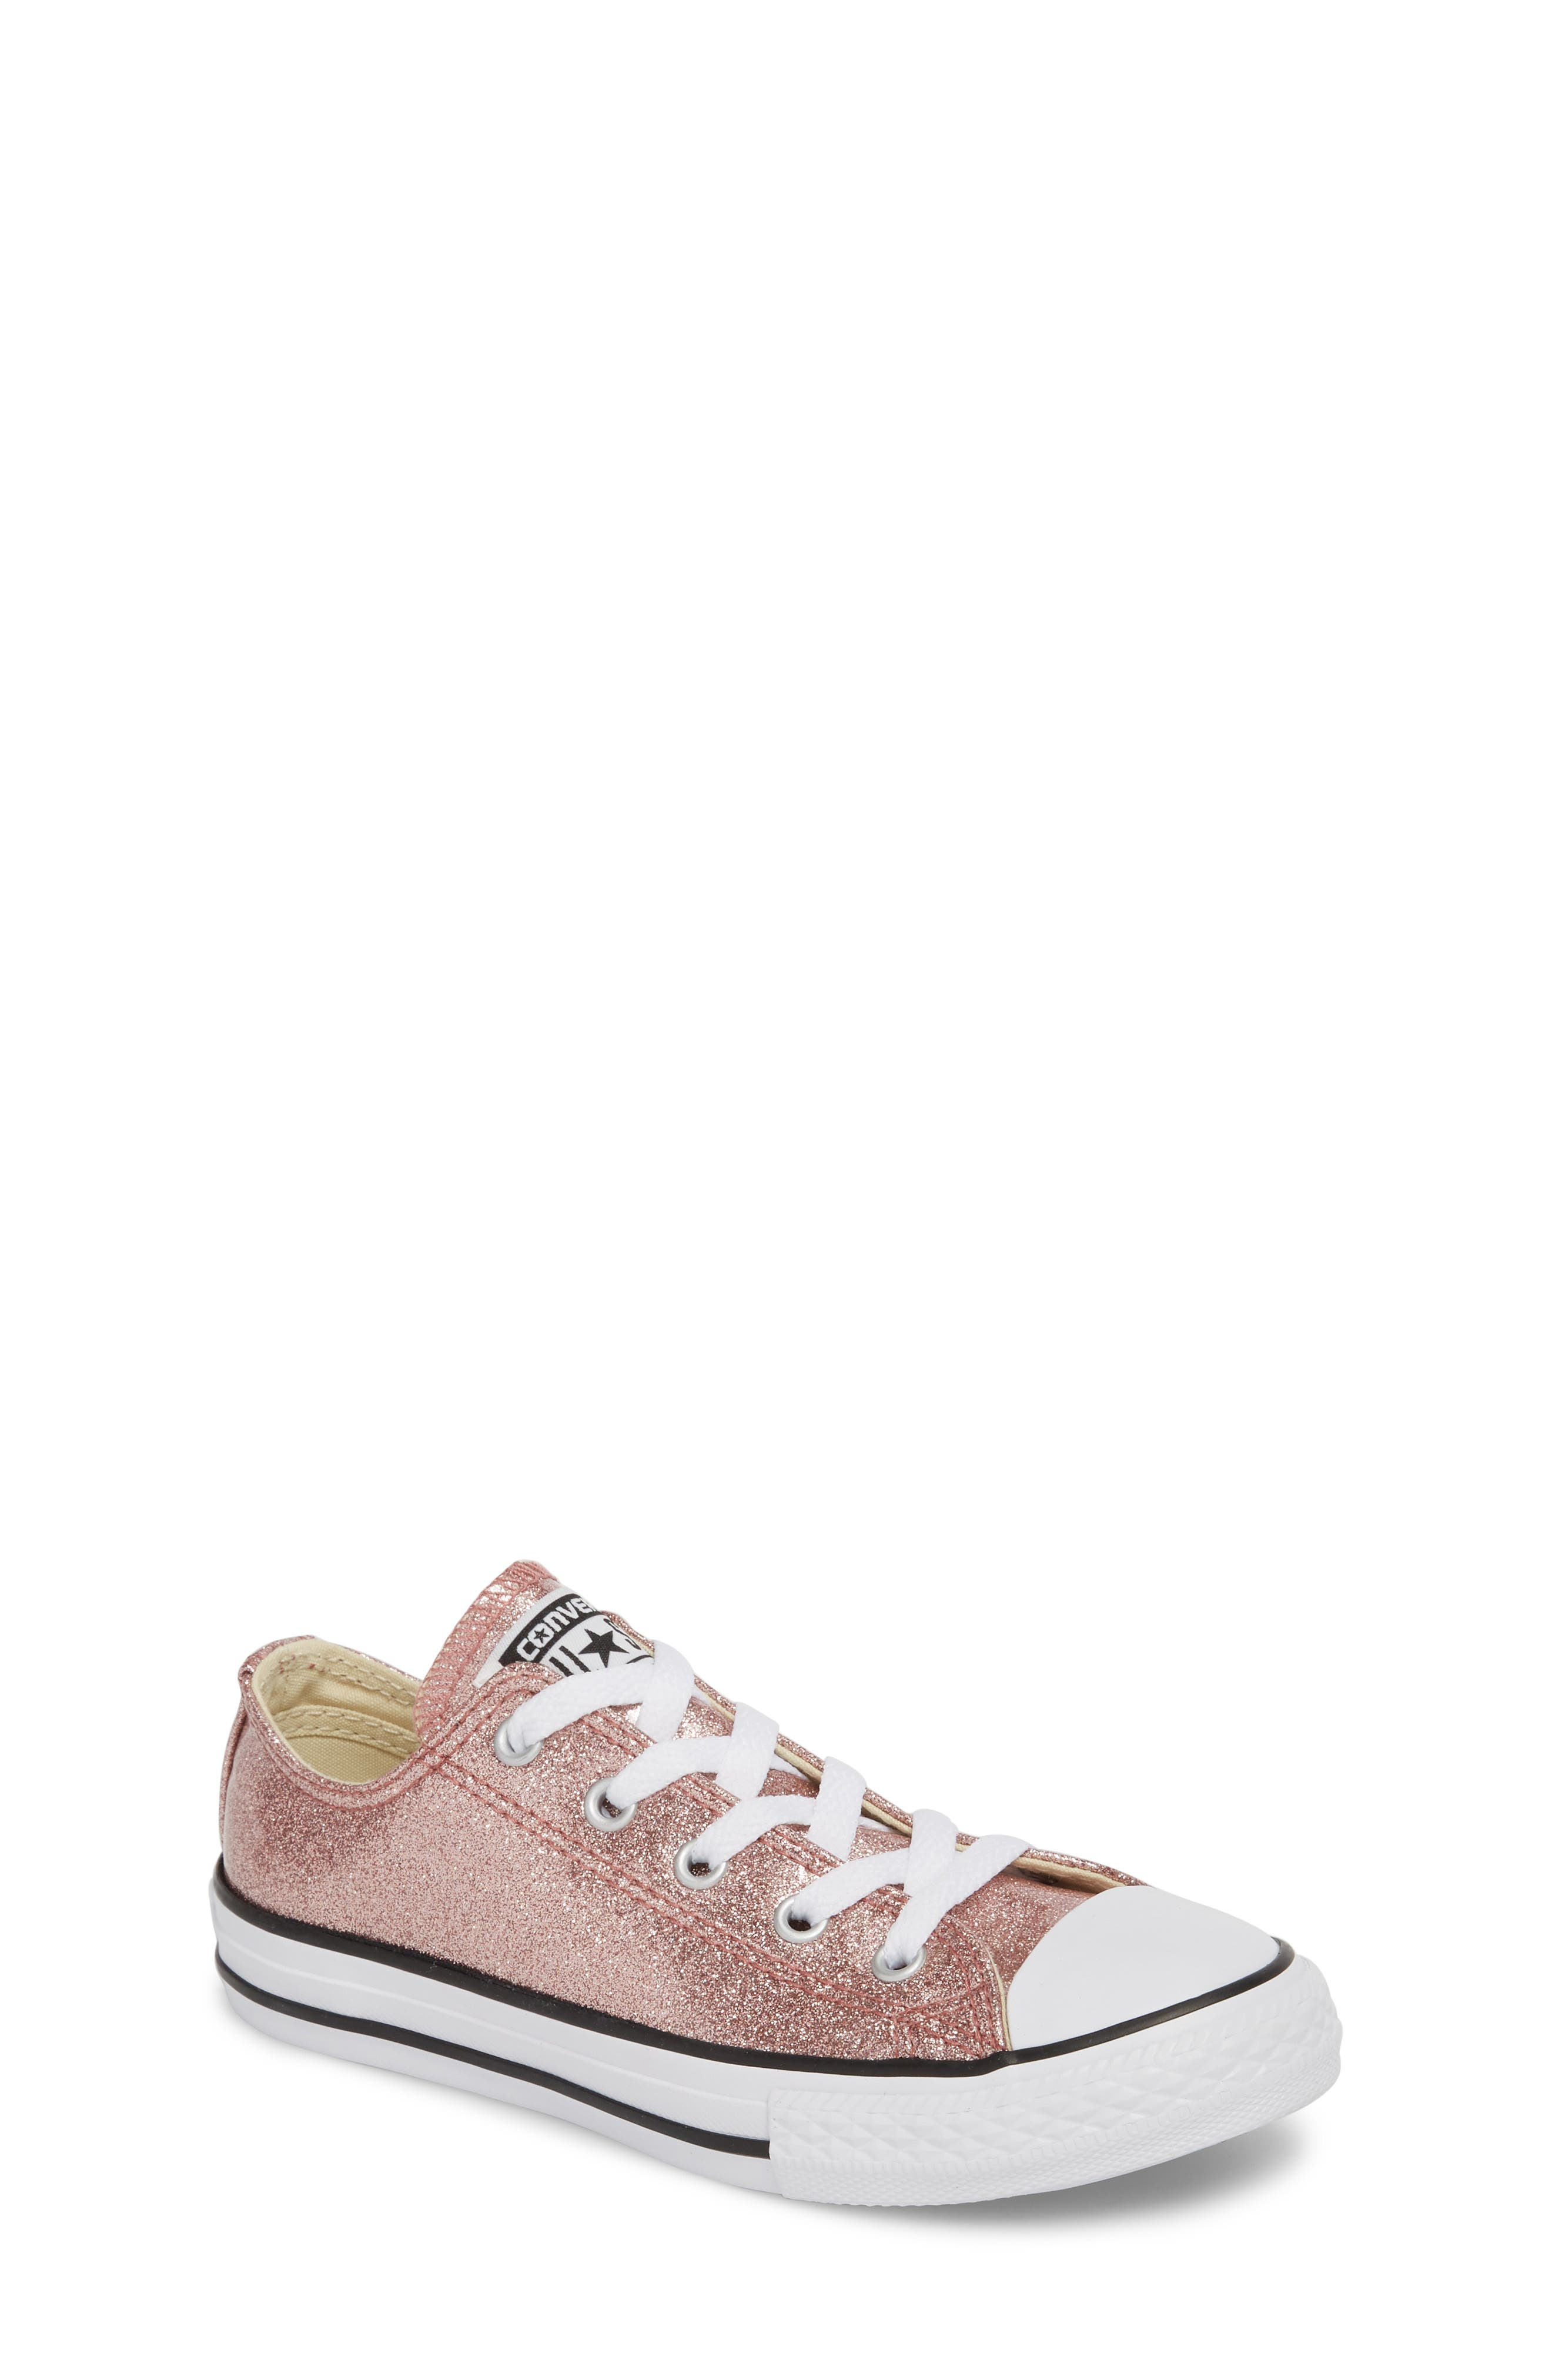 Chuck Taylor<sup>®</sup> All Star<sup>®</sup> Glitter Slip-On,                             Main thumbnail 1, color,                             220